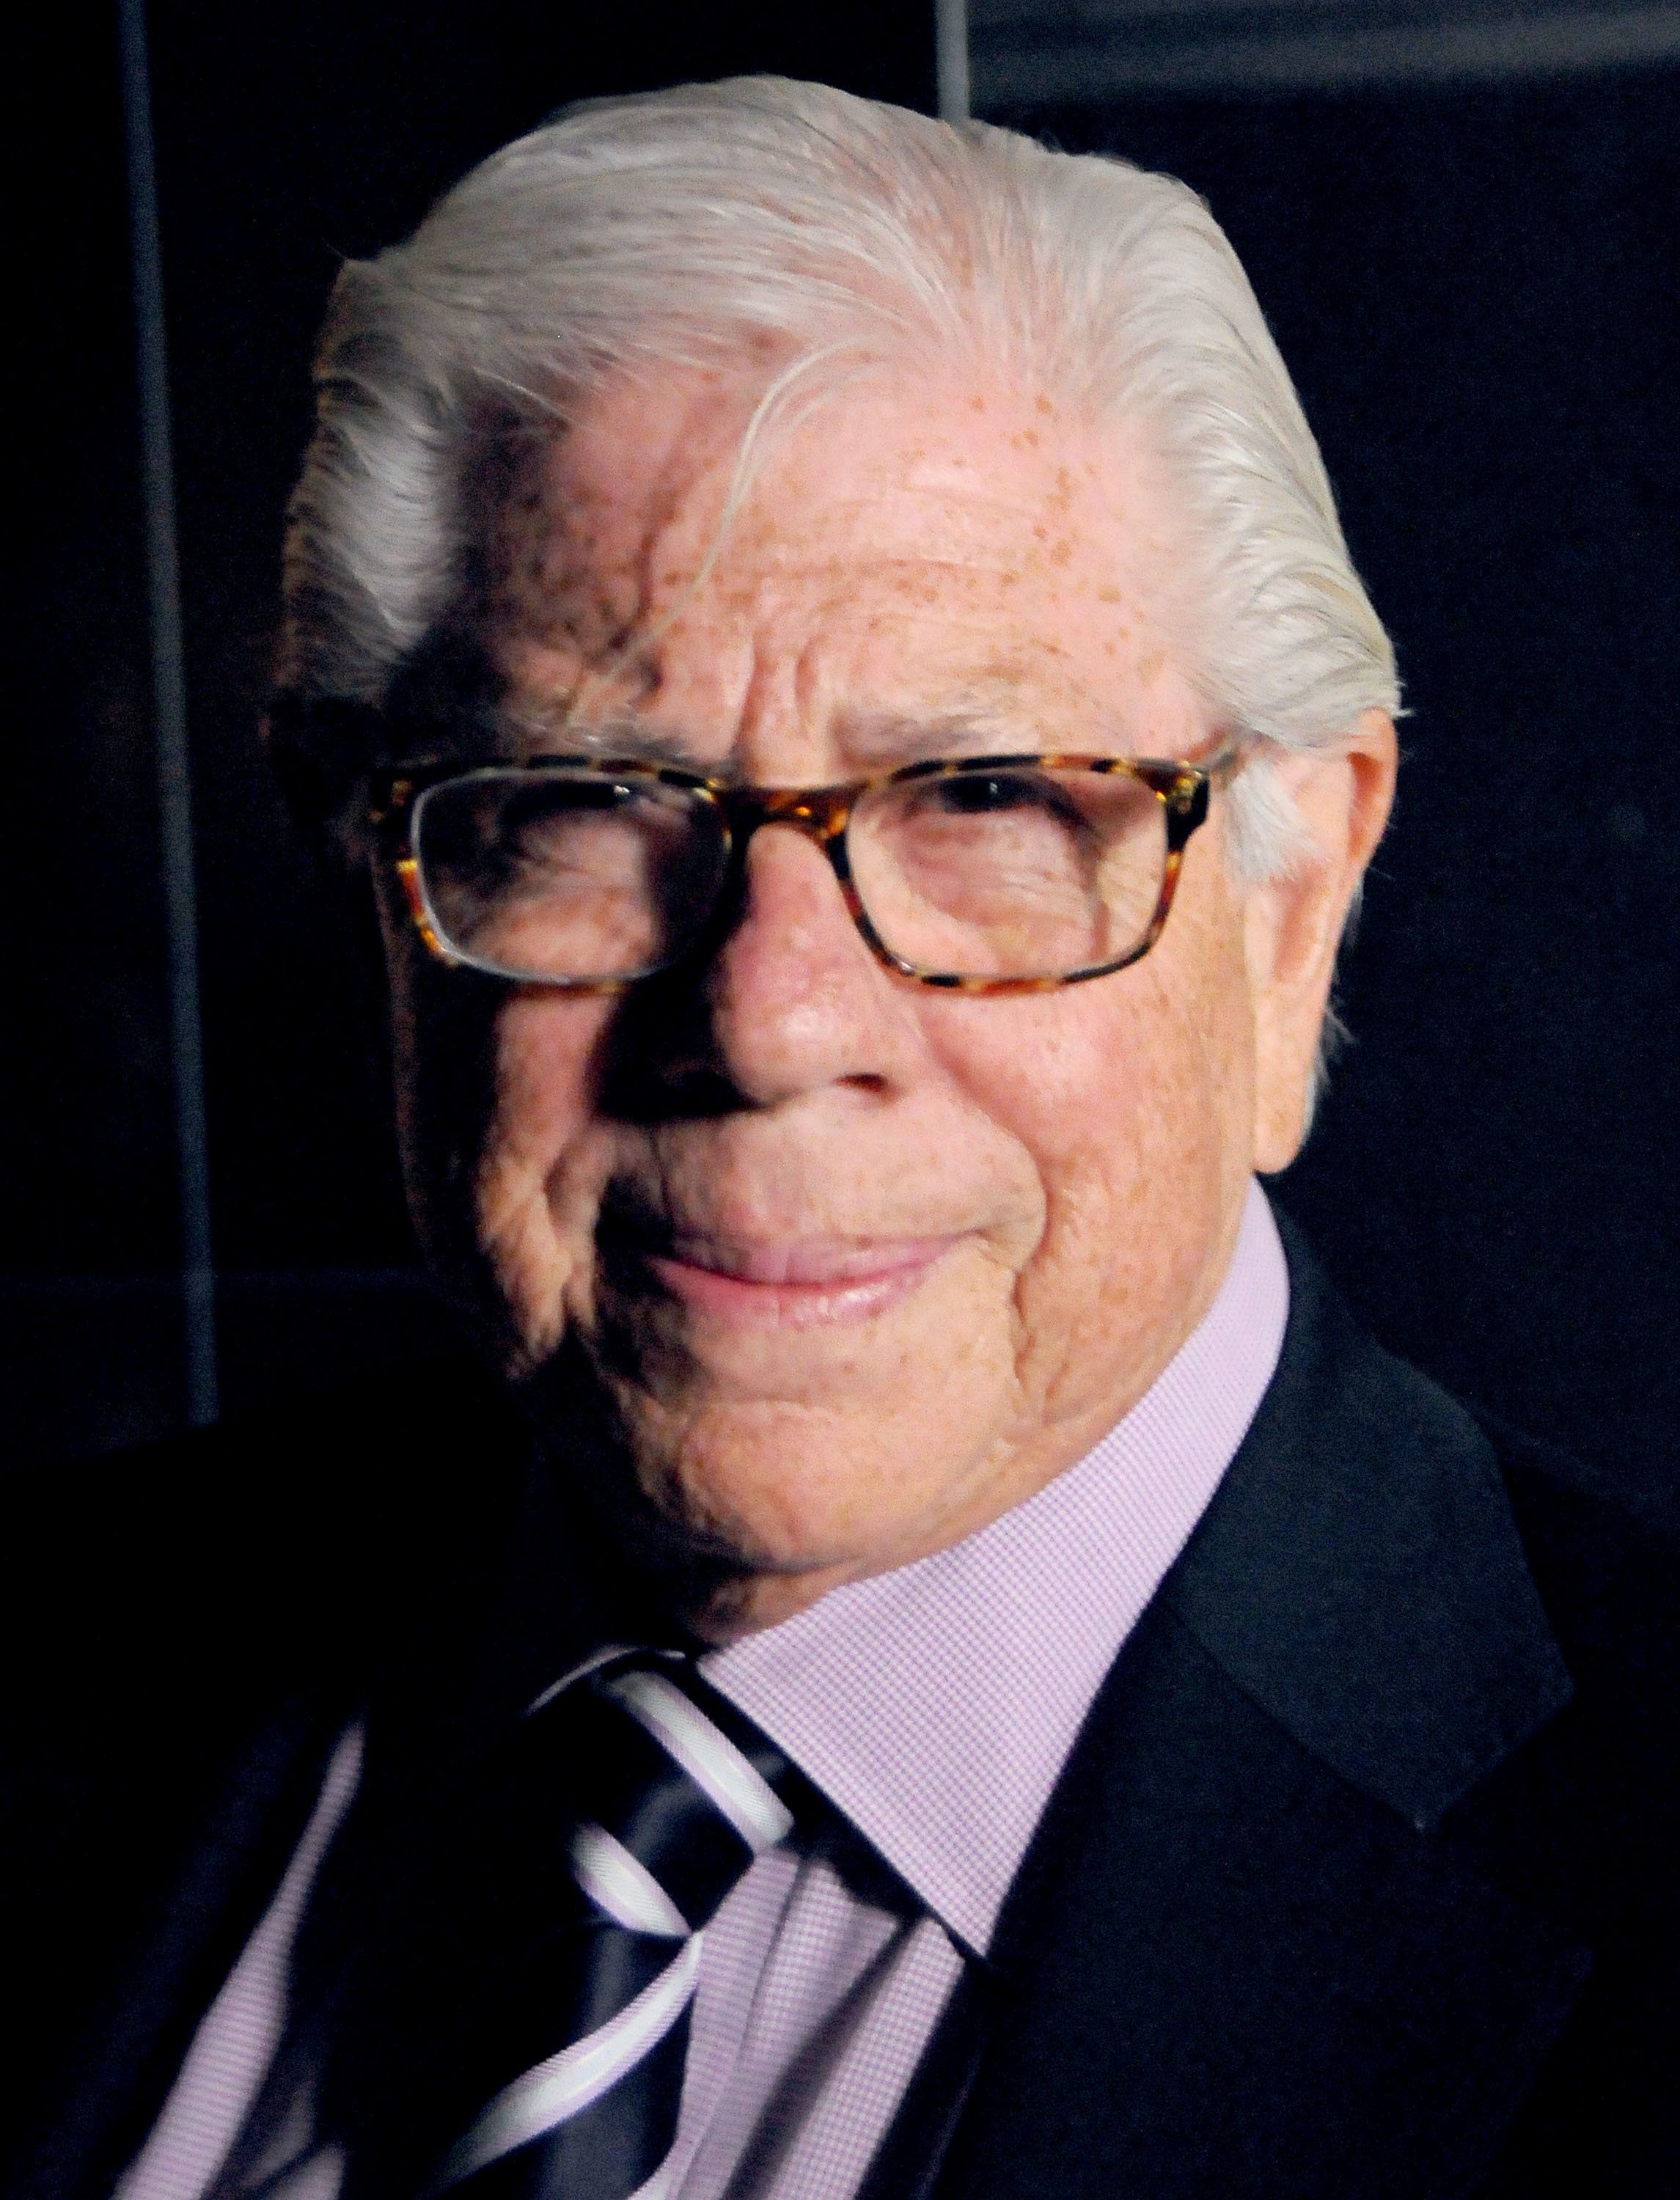 HOLLYWOOD, CA - MARCH 10:  Journalist Carl Bernstein attends the premiere of HBO's 'Everything Is Copy' at TCL Chinese Theatre on March 10, 2016 in Hollywood, California.  (Photo by Barry King/Getty Images)